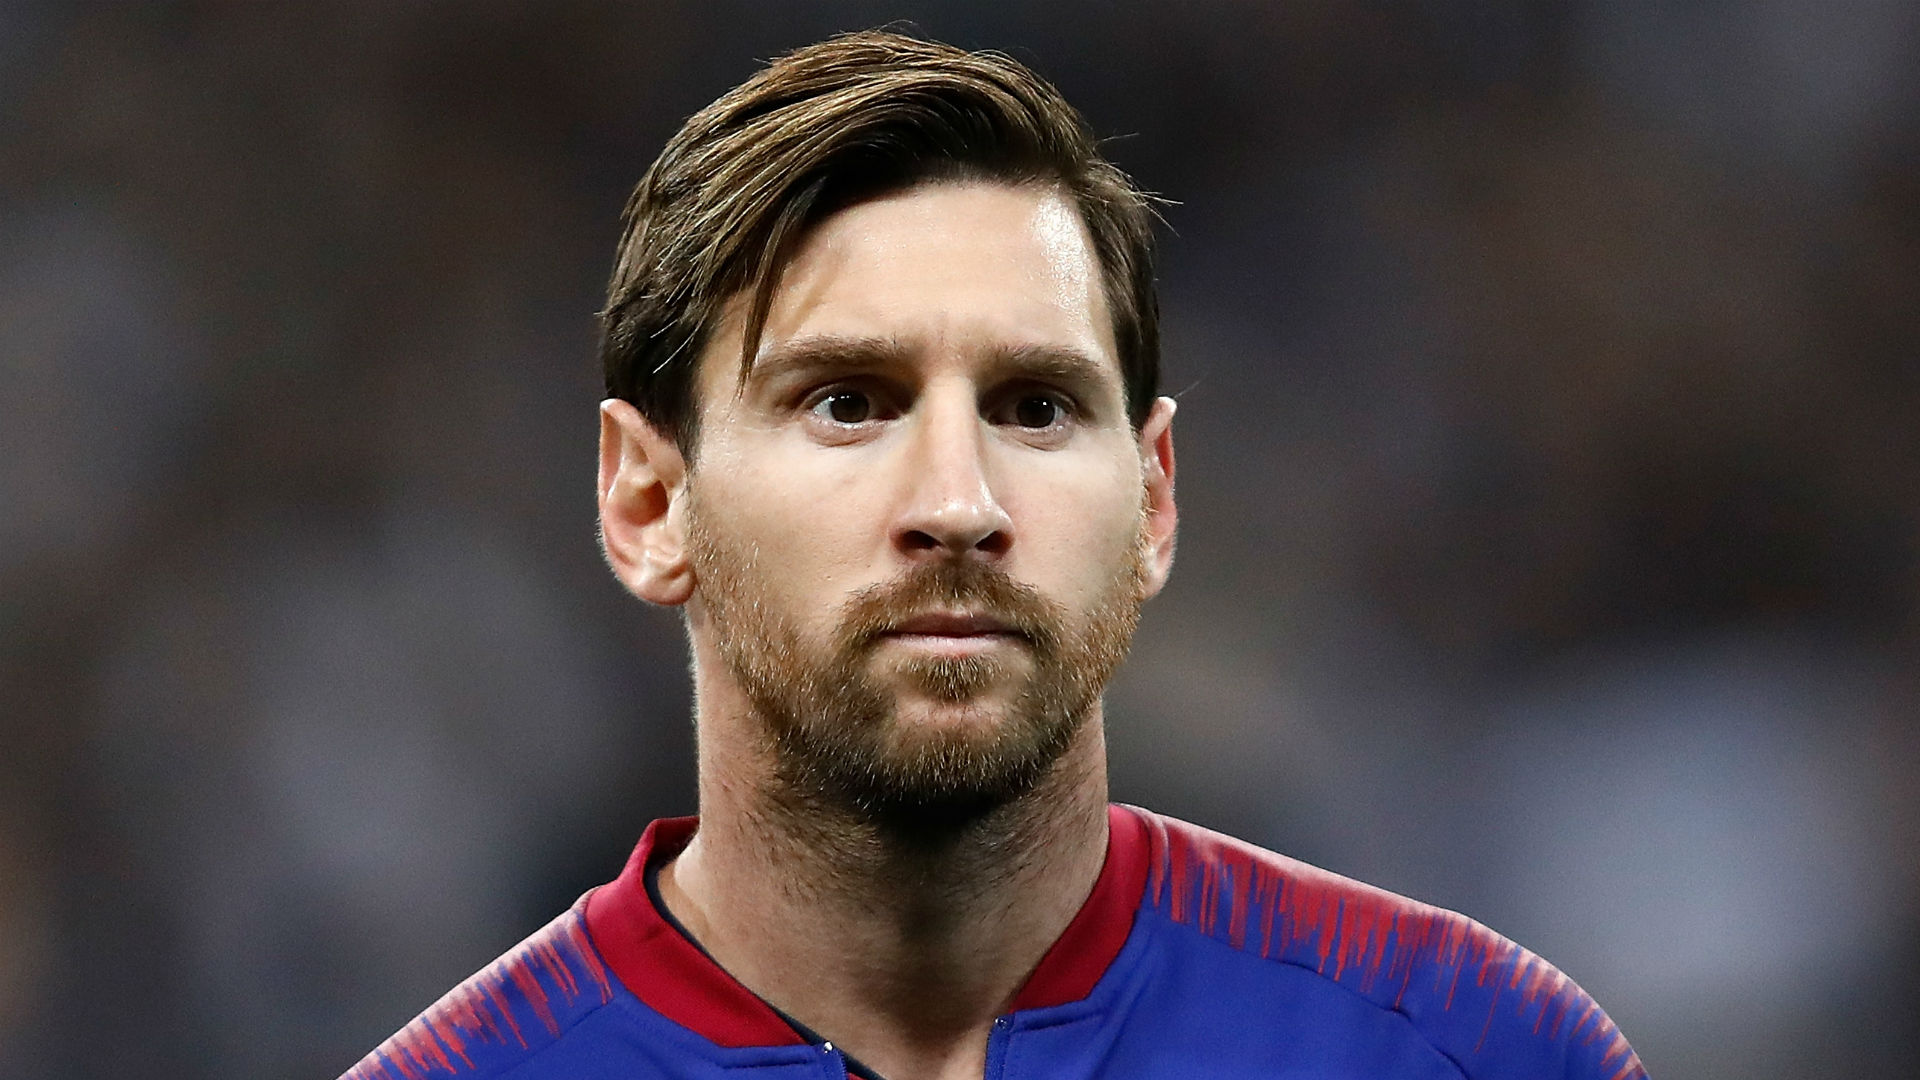 Barcelona seek Messi's extension as Argentine may quit for free in 2020